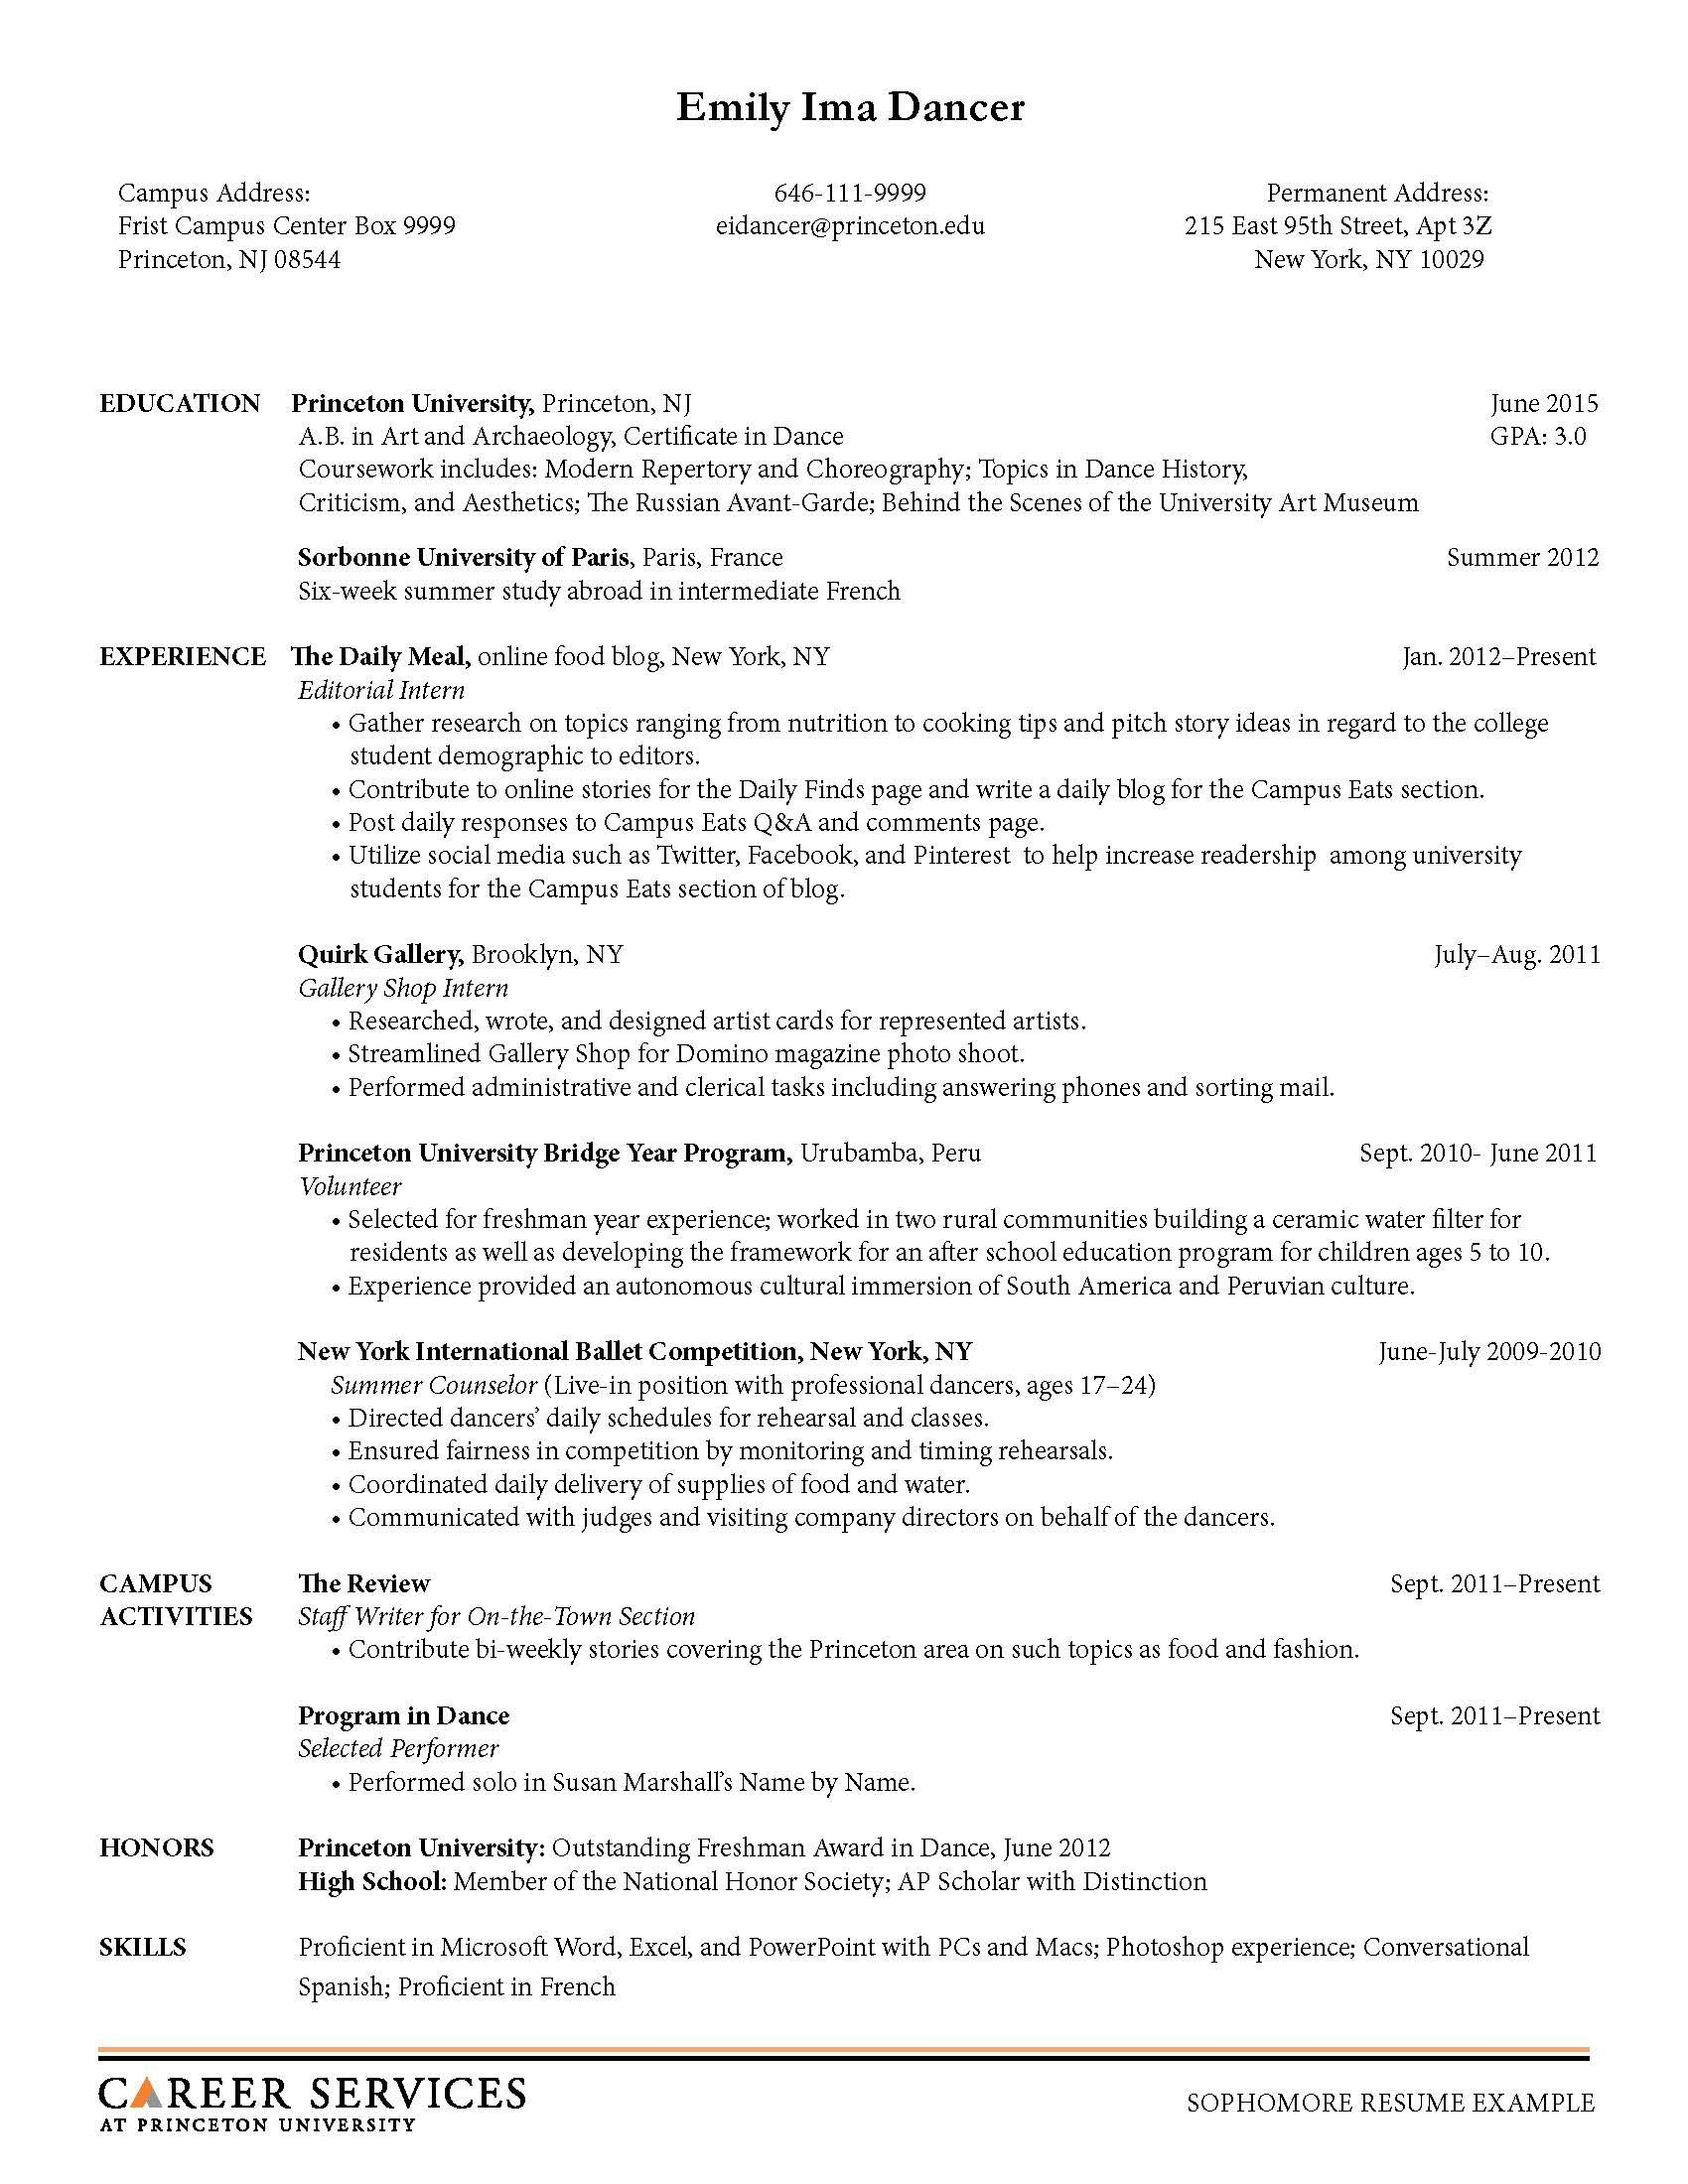 Opposenewapstandardsus  Remarkable Sample Resume Resume And Career On Pinterest With Fair Resume Margin Besides Flight Attendant Resumes Furthermore Admissions Counselor Resume With Cute Millwright Resume Also Musician Resume Template In Addition Sample Resume For Warehouse Worker And Free Resume Bulider As Well As Latex Resumes Additionally Resume Examples For Servers From Pinterestcom With Opposenewapstandardsus  Fair Sample Resume Resume And Career On Pinterest With Cute Resume Margin Besides Flight Attendant Resumes Furthermore Admissions Counselor Resume And Remarkable Millwright Resume Also Musician Resume Template In Addition Sample Resume For Warehouse Worker From Pinterestcom